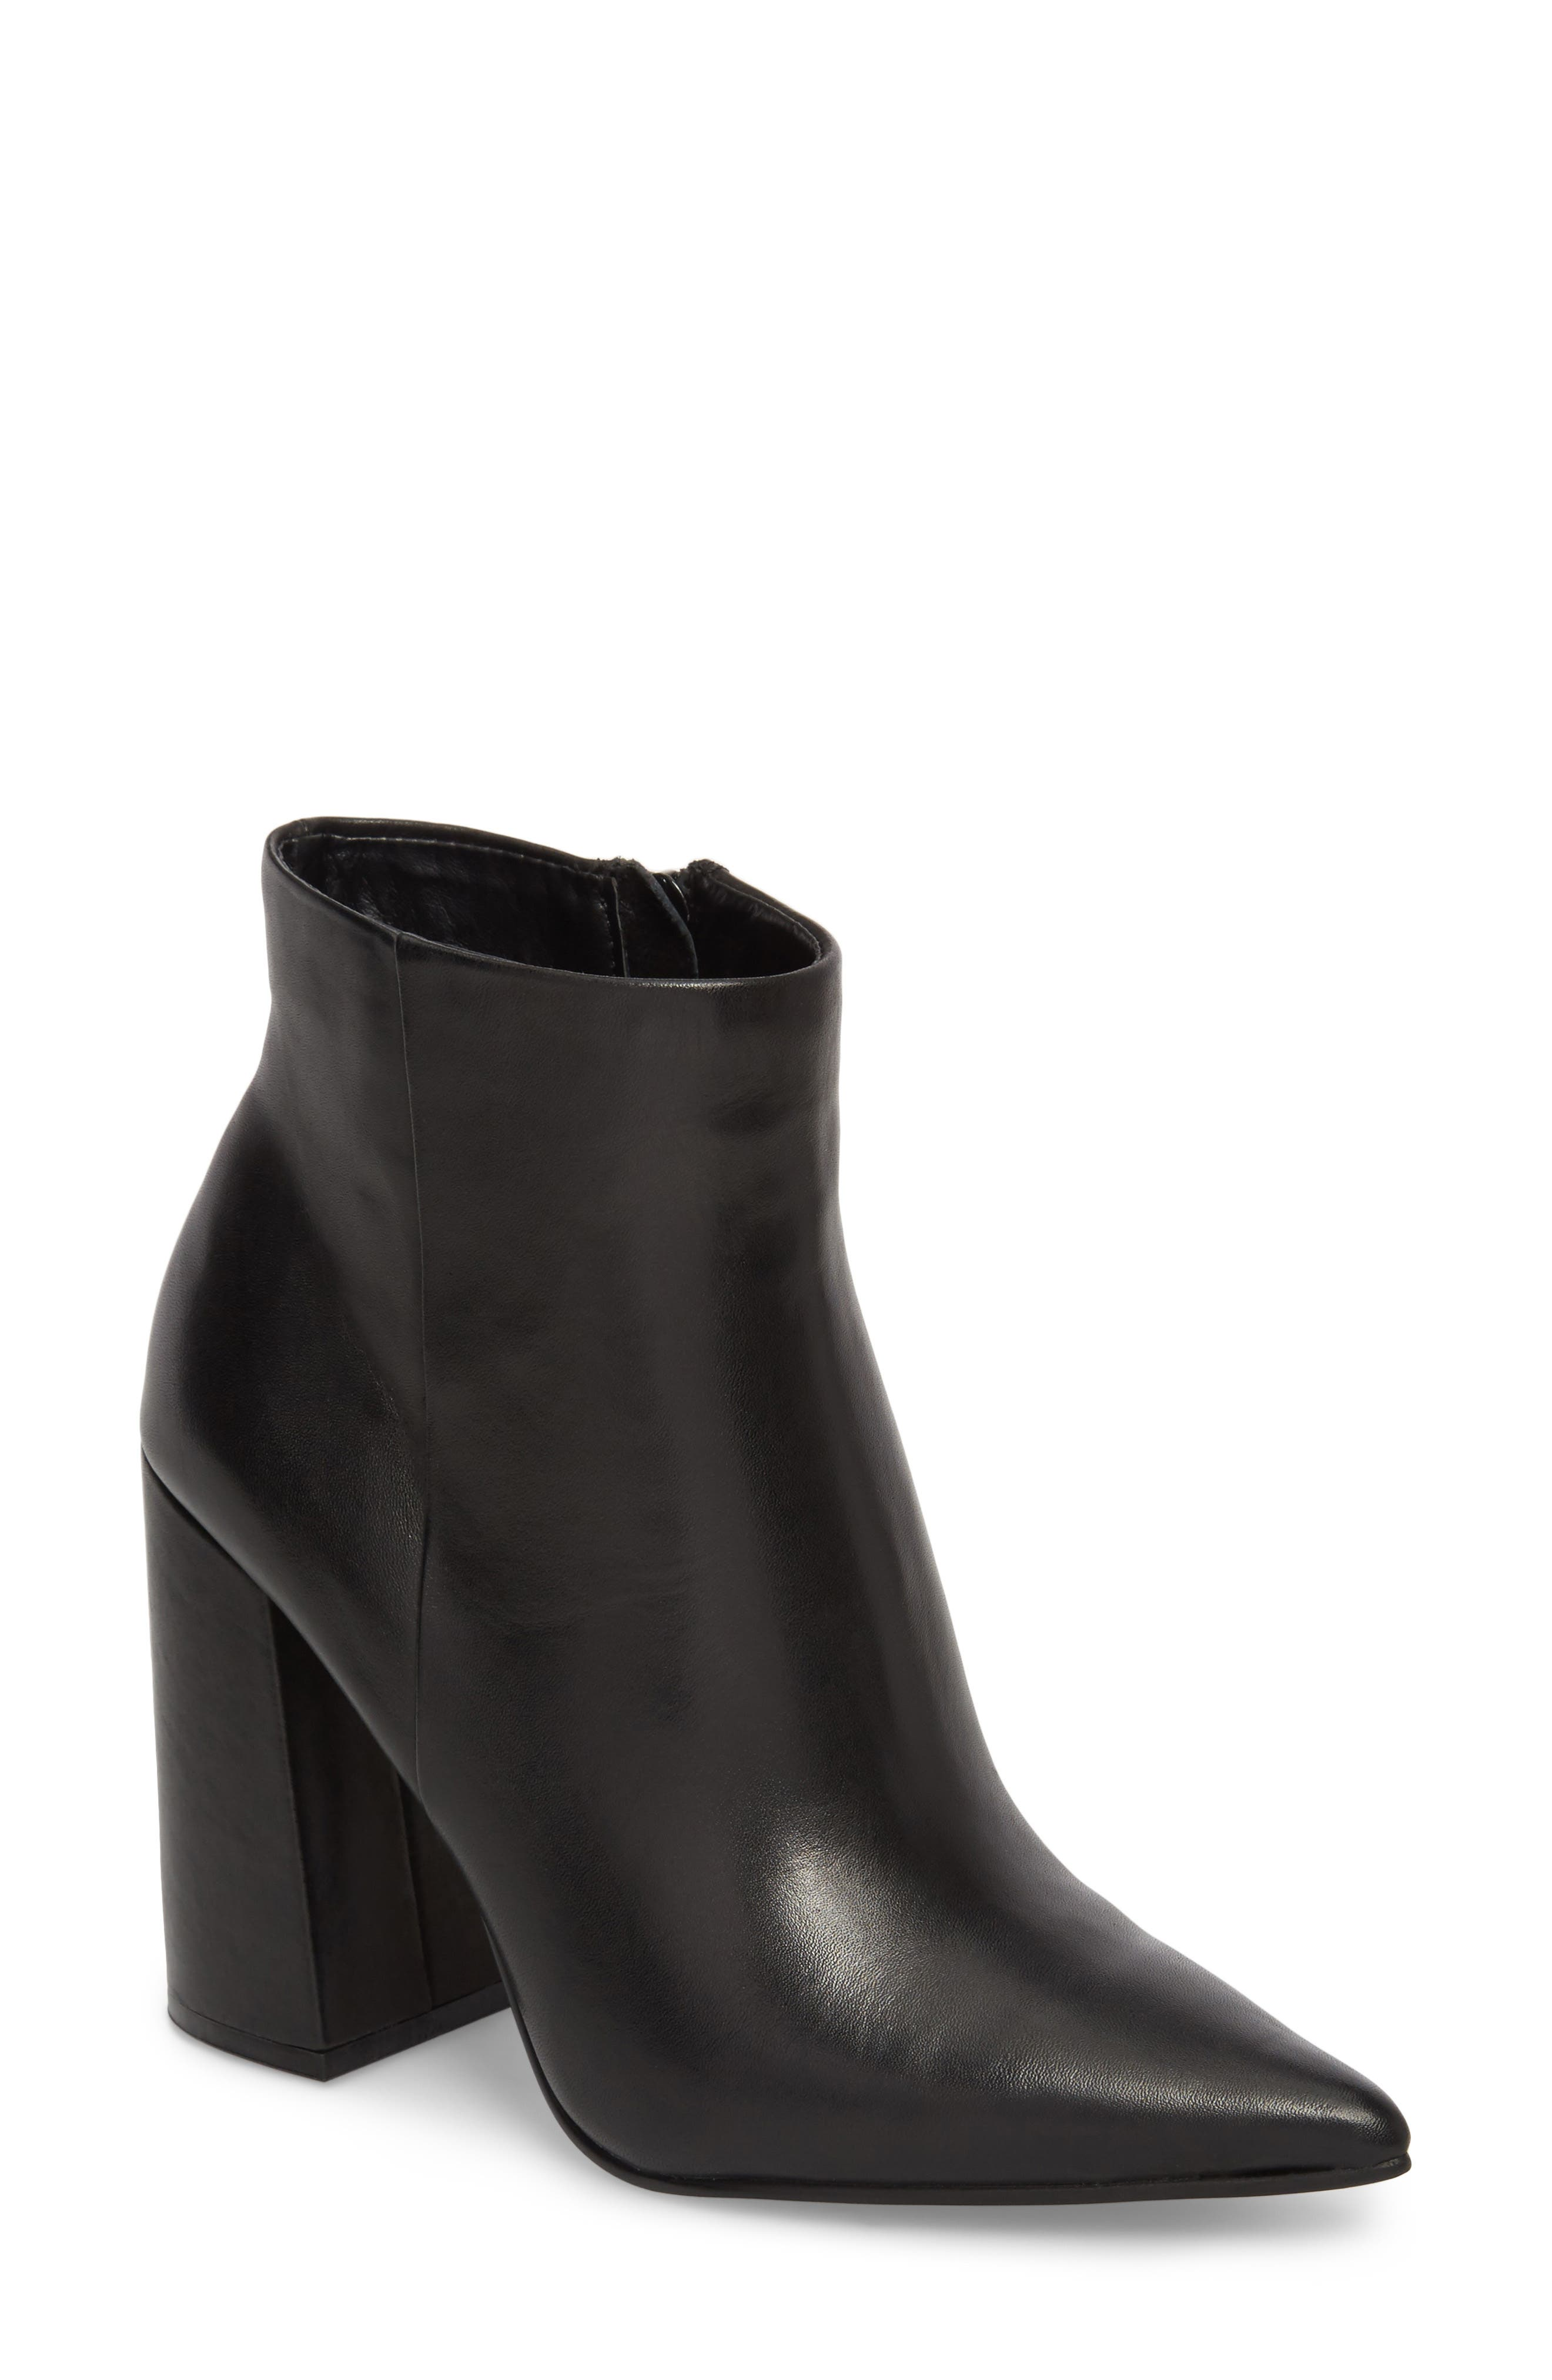 Justify Flared Heel Bootie,                             Main thumbnail 1, color,